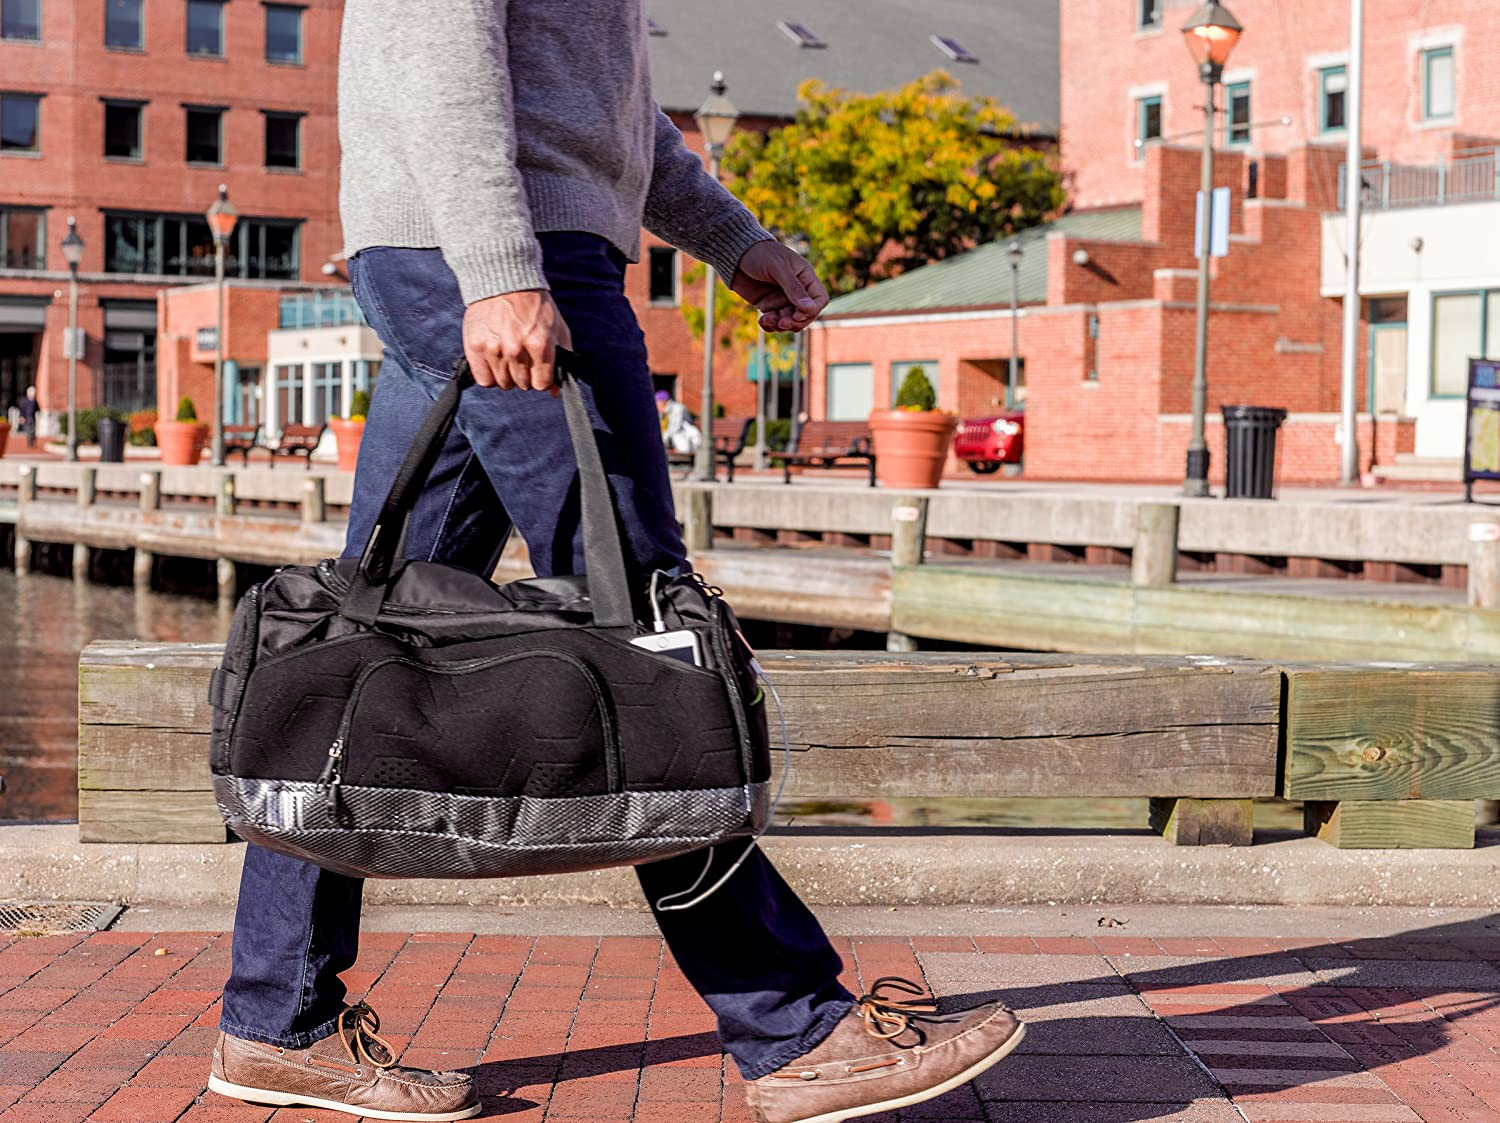 DUF-B6-NY-BL Black with Lime M-Edge Duffel Bag with Battery